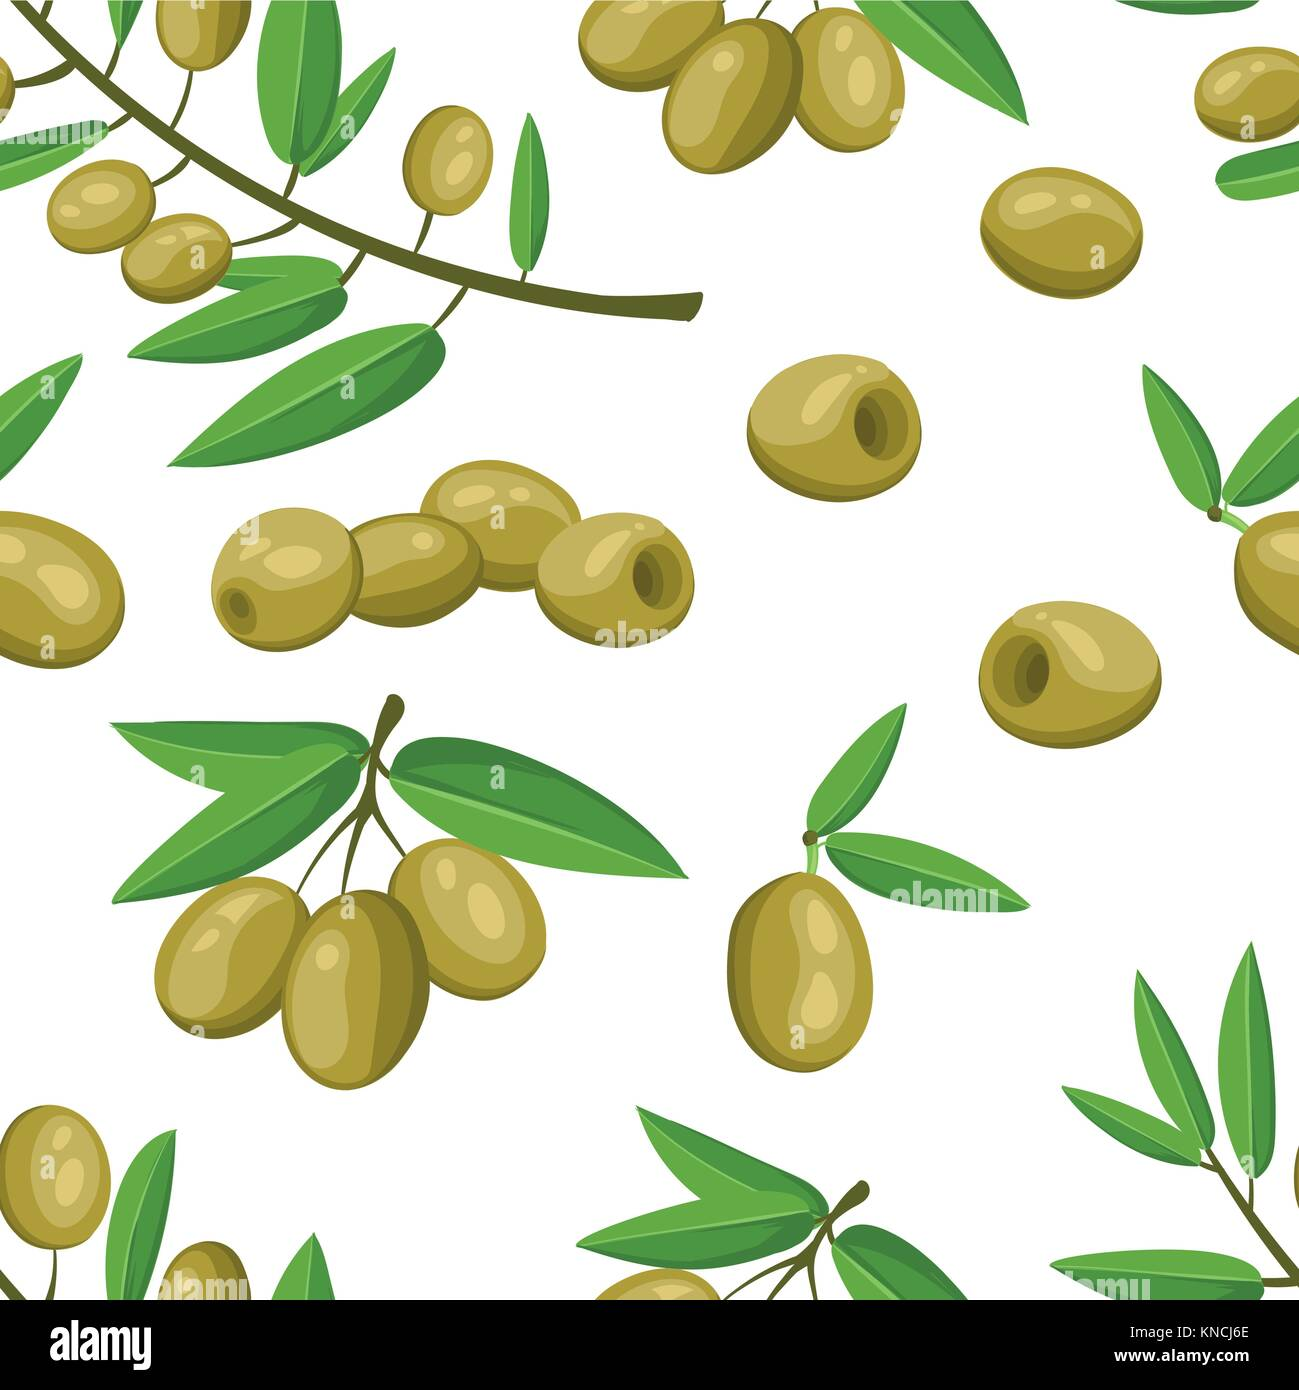 Seamless pattern green olives branch with leaves healthy vegetables and vegetarian fresh organic food vector illustration - Stock Vector